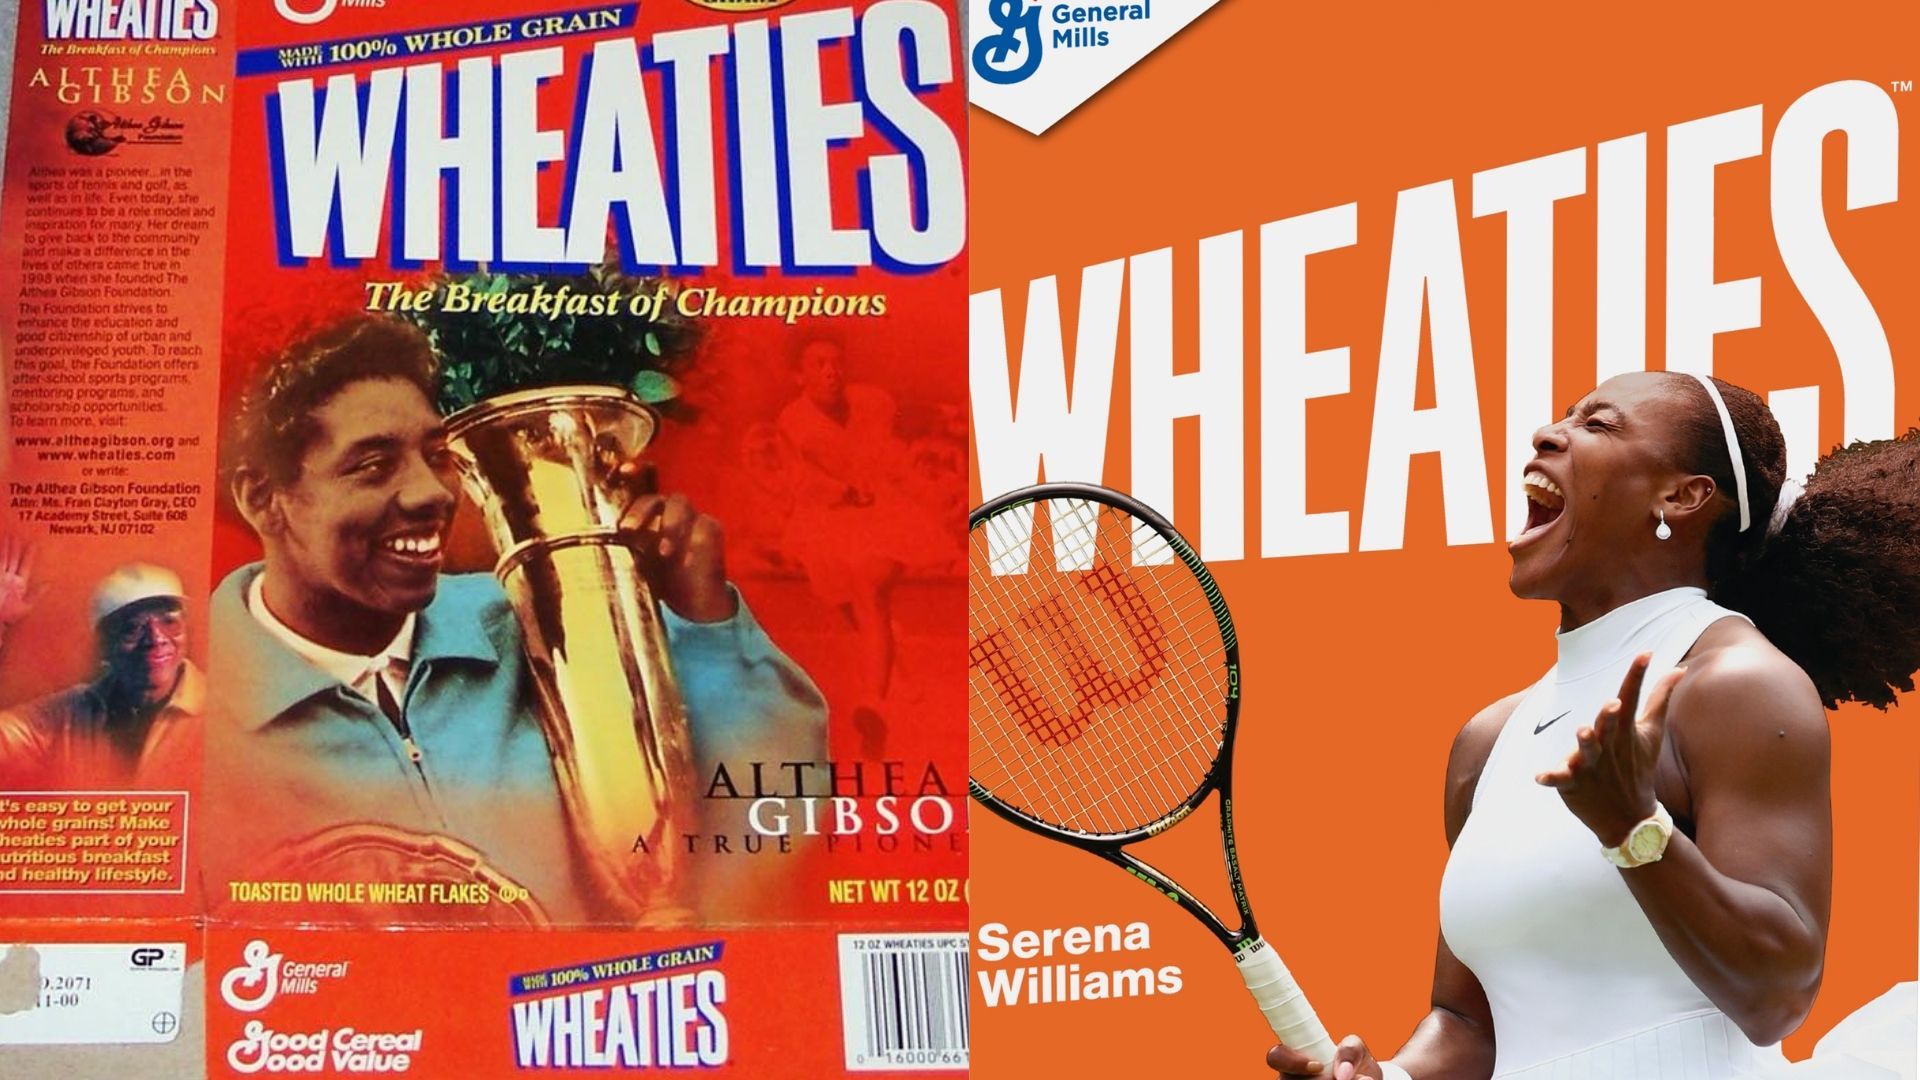 Serena Williams Follows In The Footsteps Of Althea Gibson As The Second Black Woman To Be Featured On A Wheaties Box